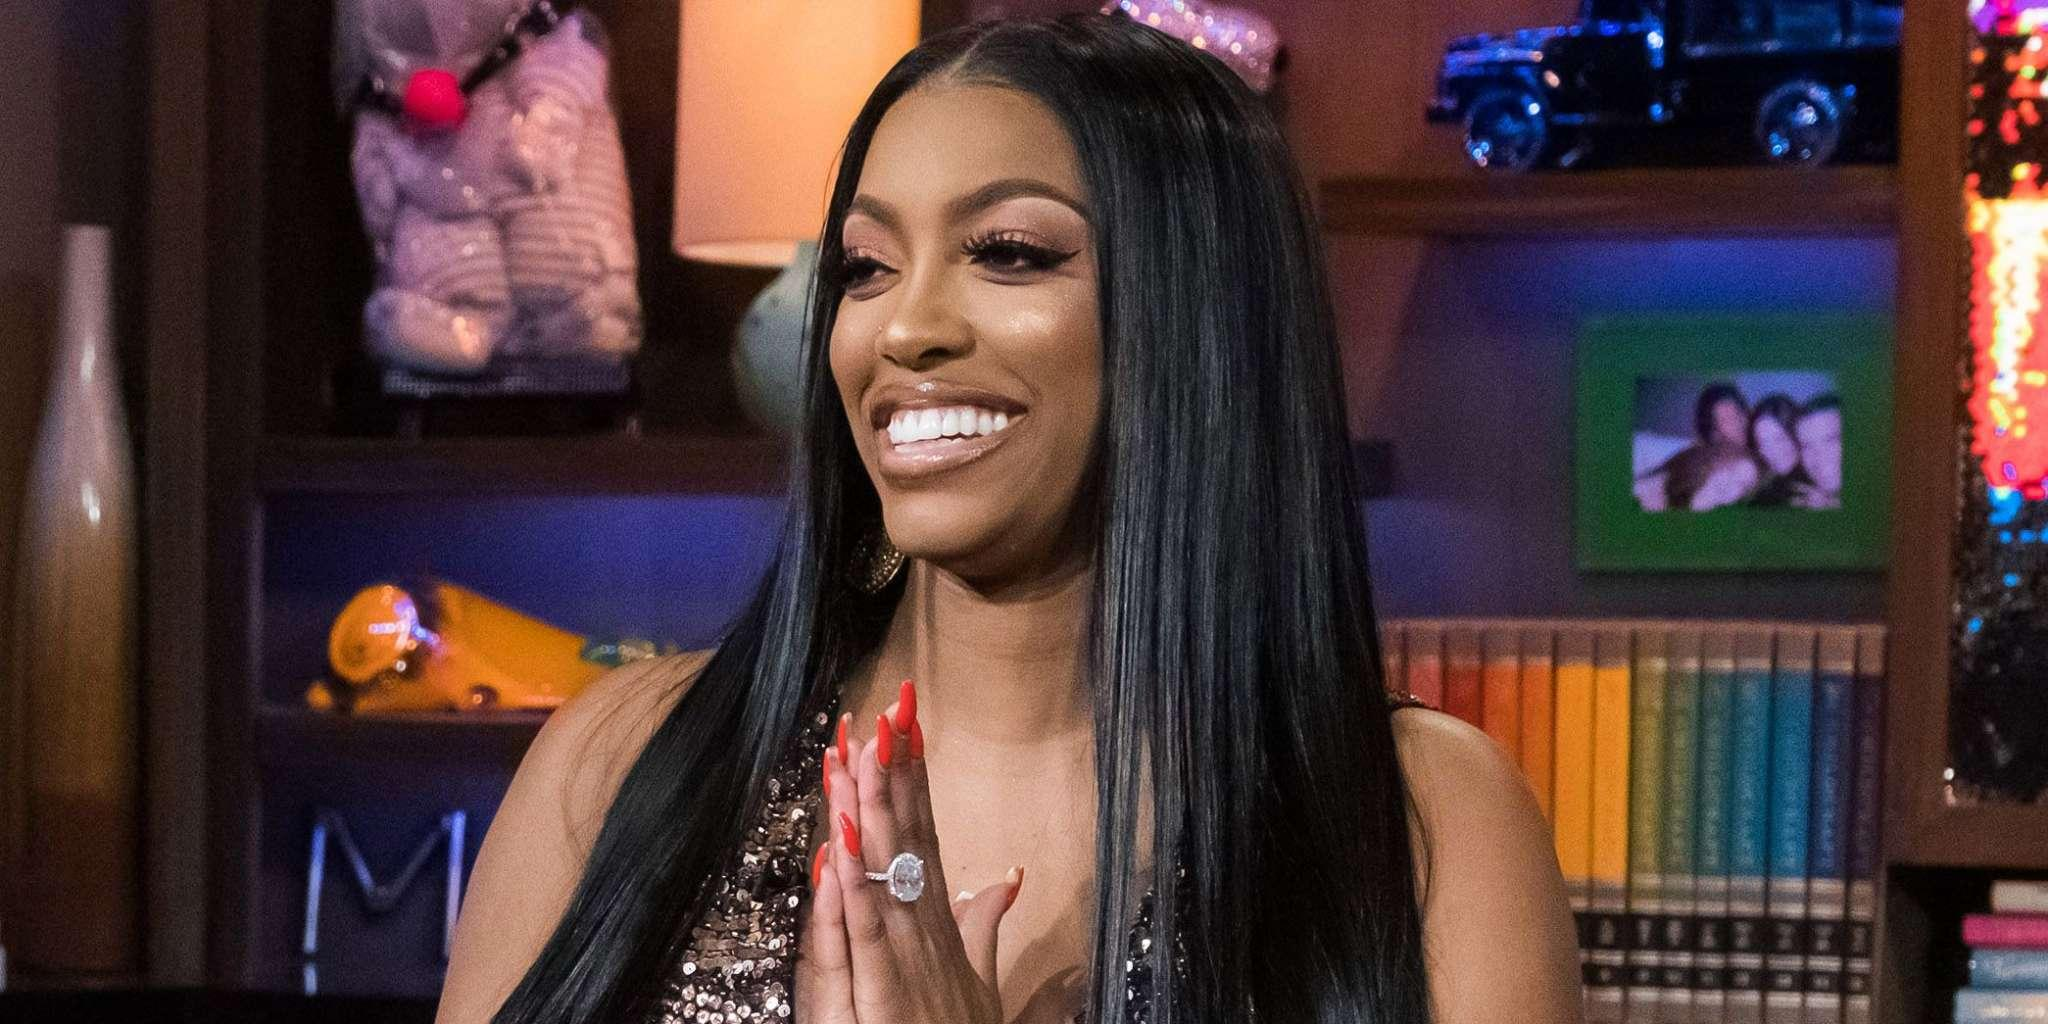 Porsha Williams Rocks A Jaw-Dropping Black Latex Outfit At A Party - Check Out The Pics